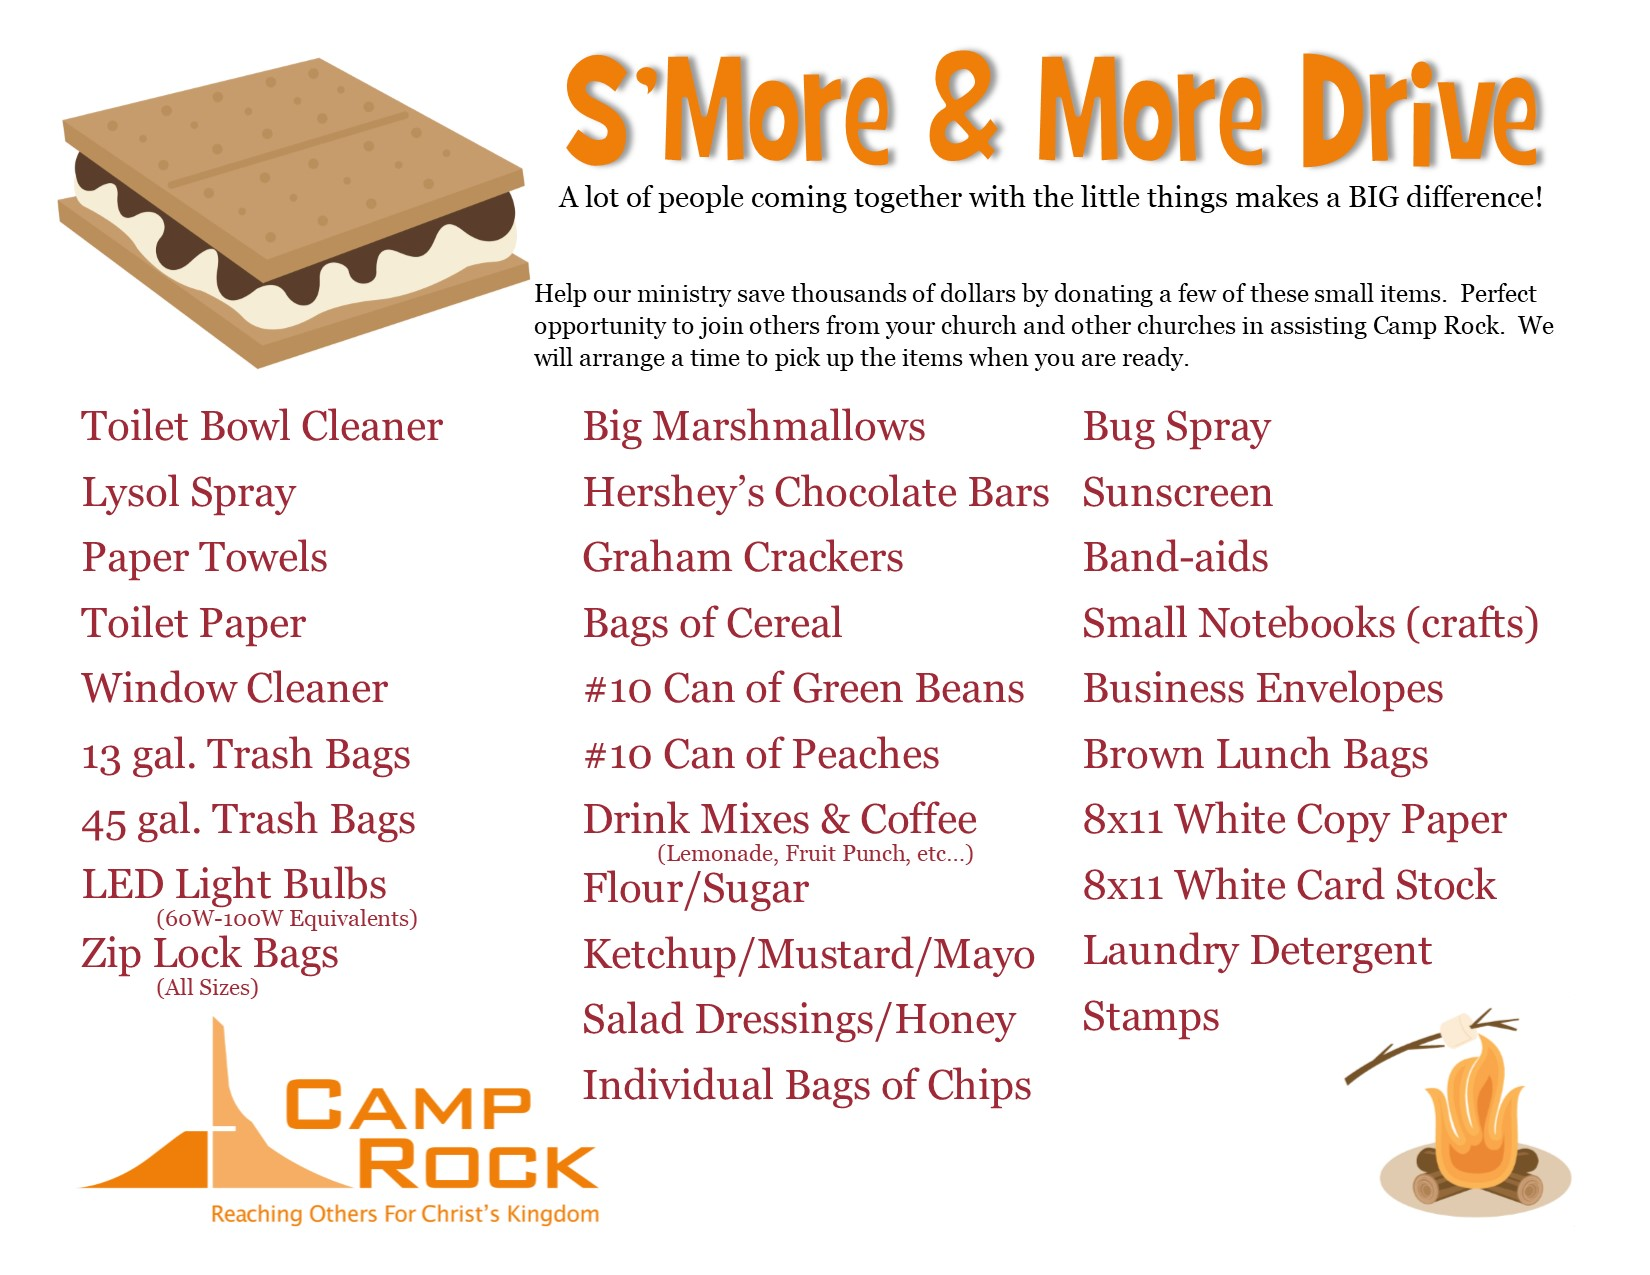 S'more and More Drive Flyer.jpg